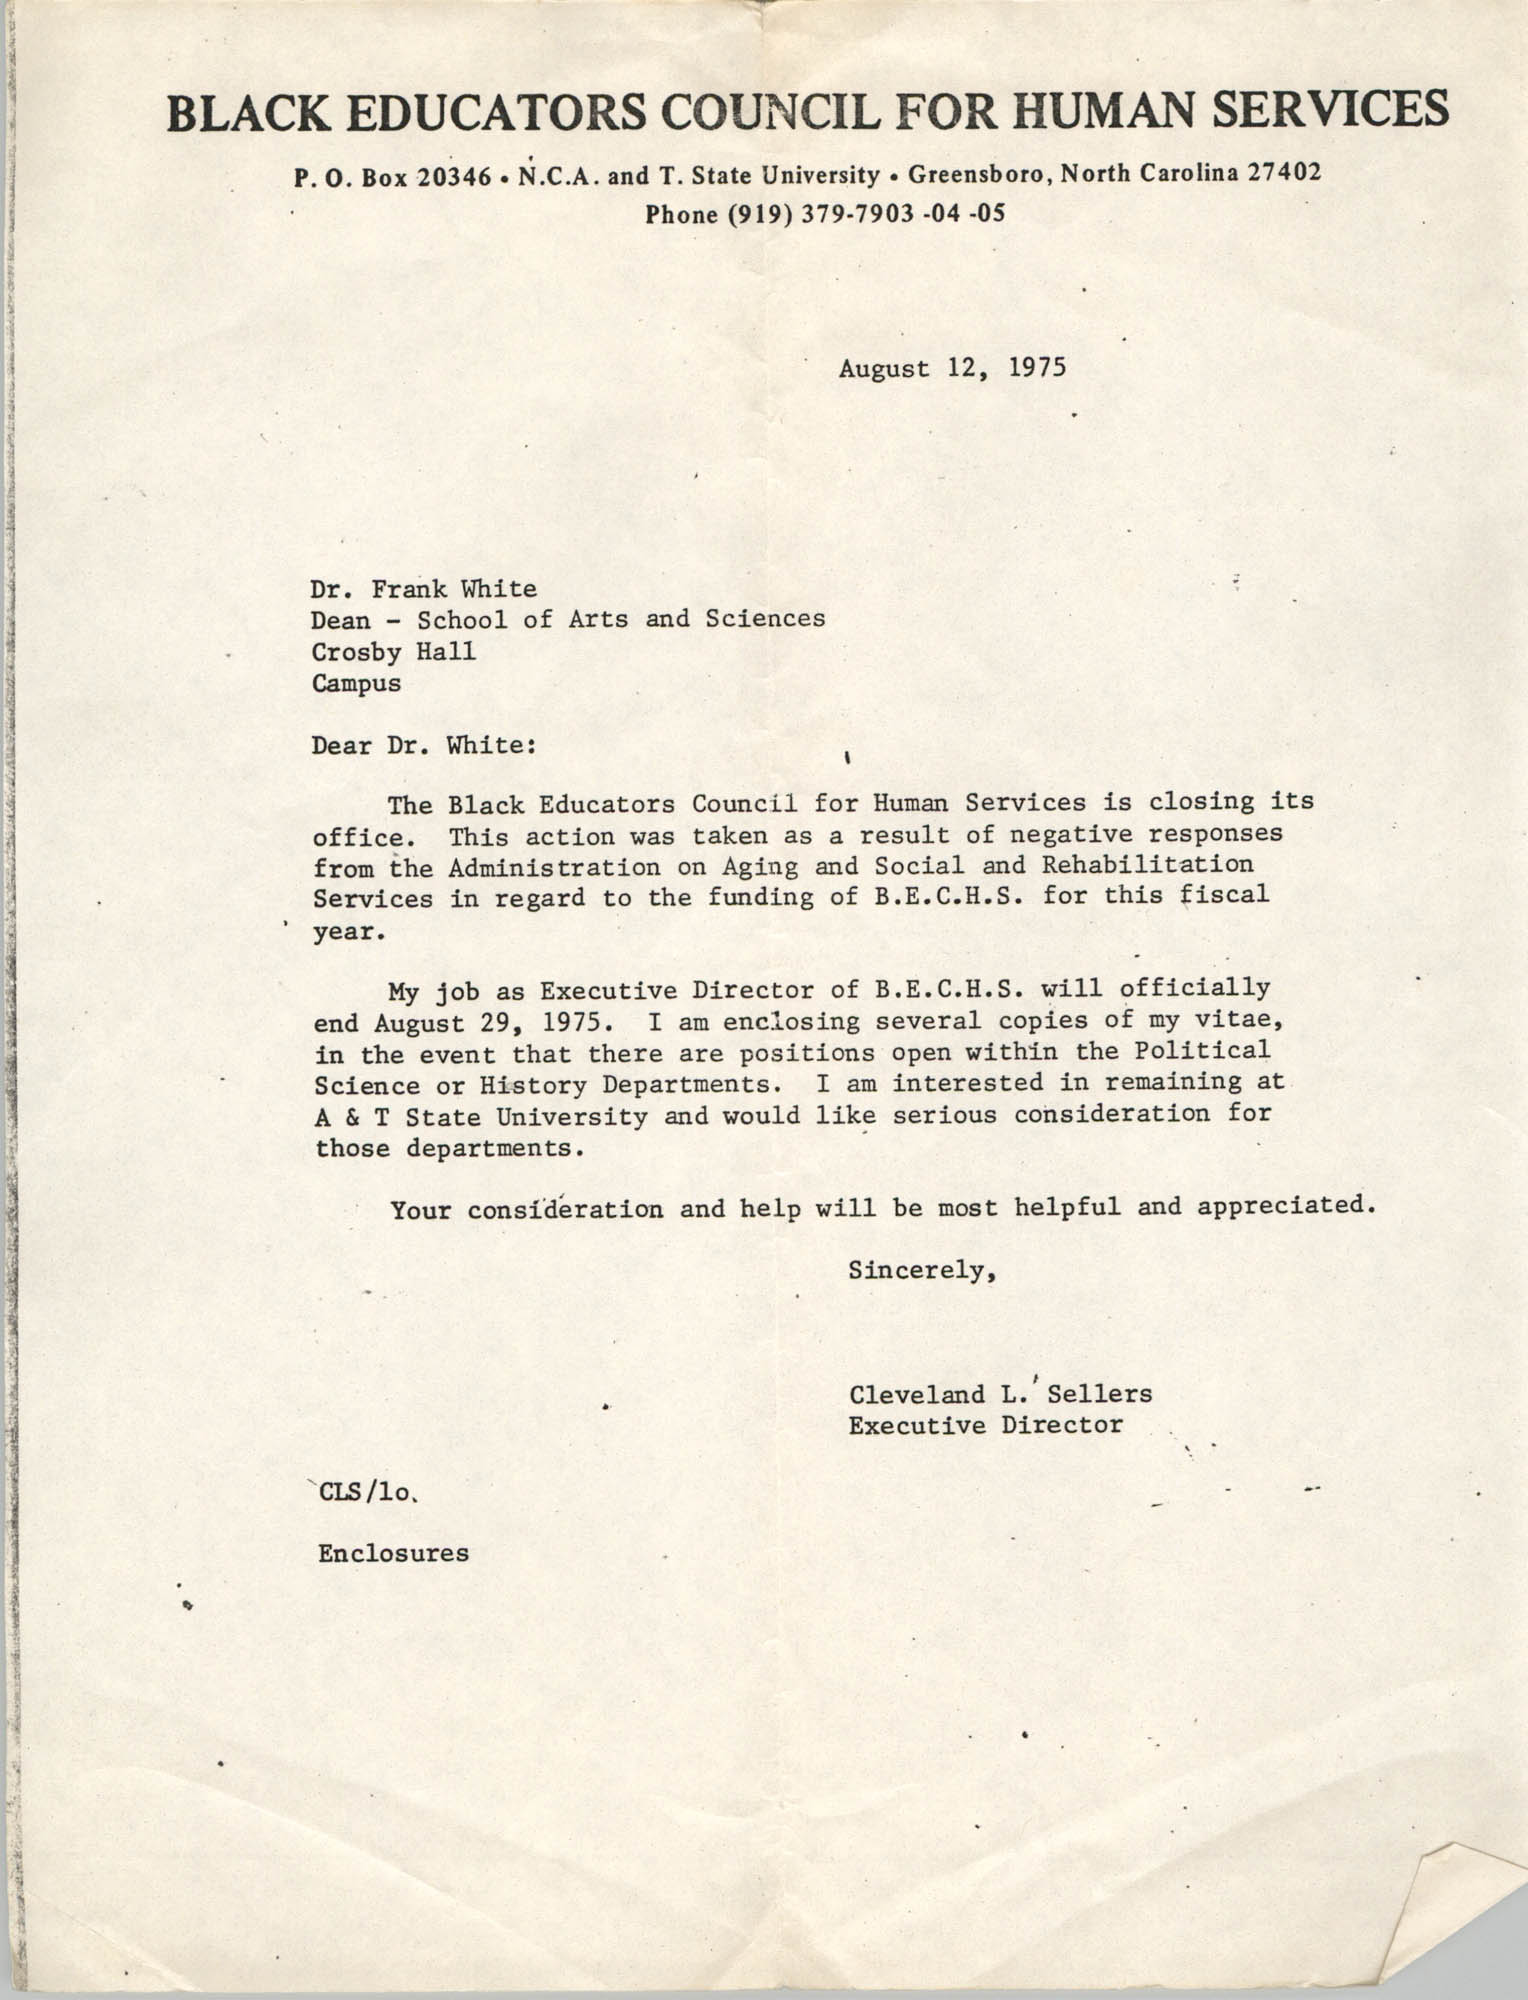 Letter from Cleveland Sellers to Frank White, August 12, 1975